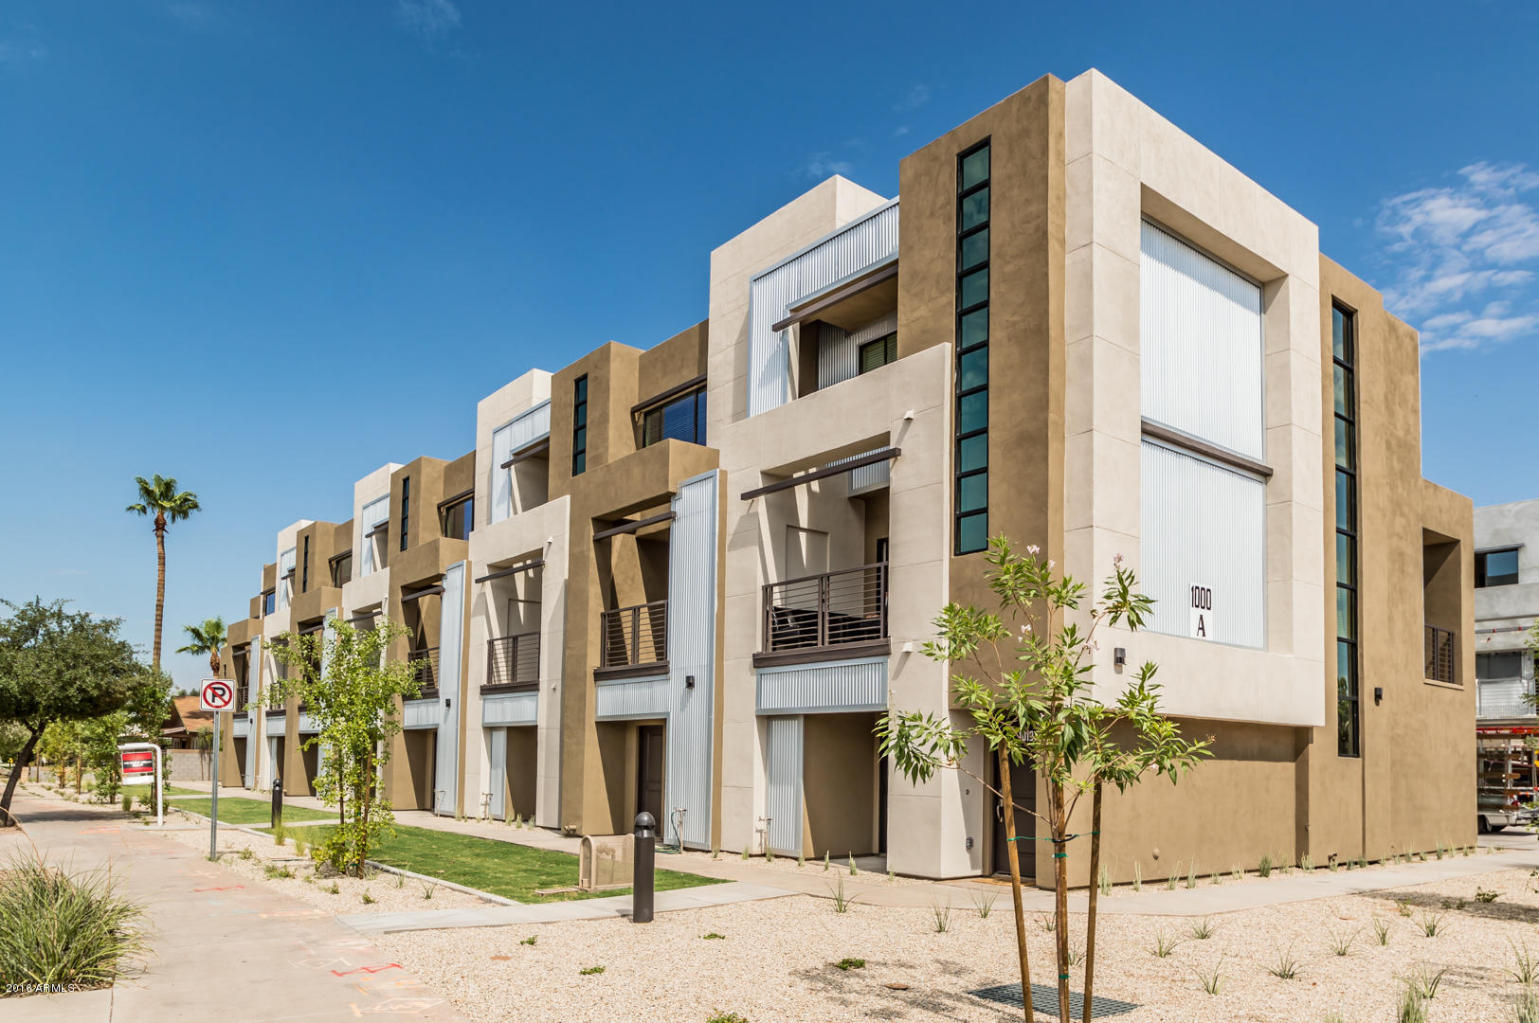 1000 On 5th Urban Living Condos For Sale Rent Tempe Az